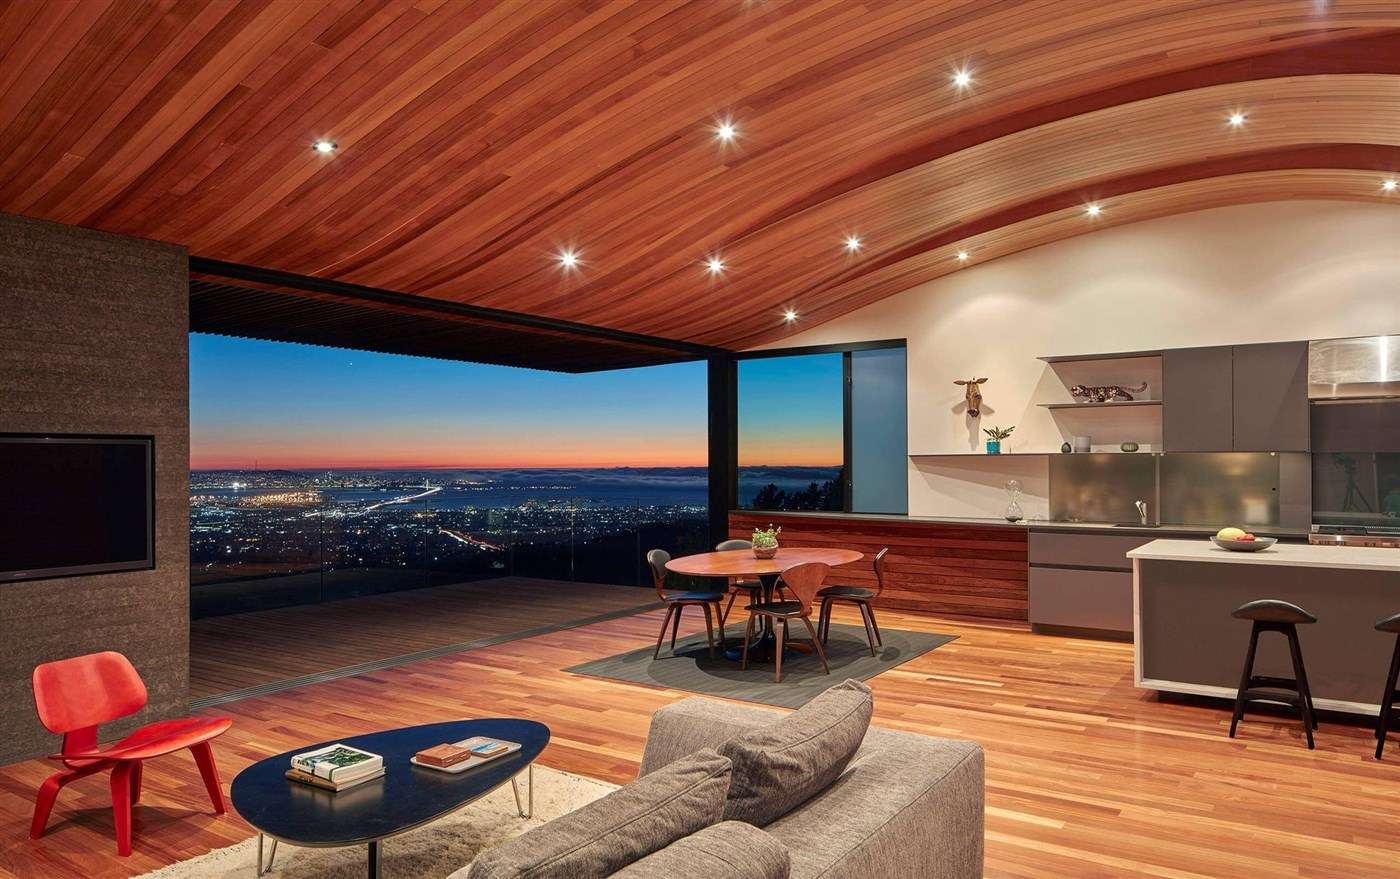 Wood living room design ideas, cozy ceiling